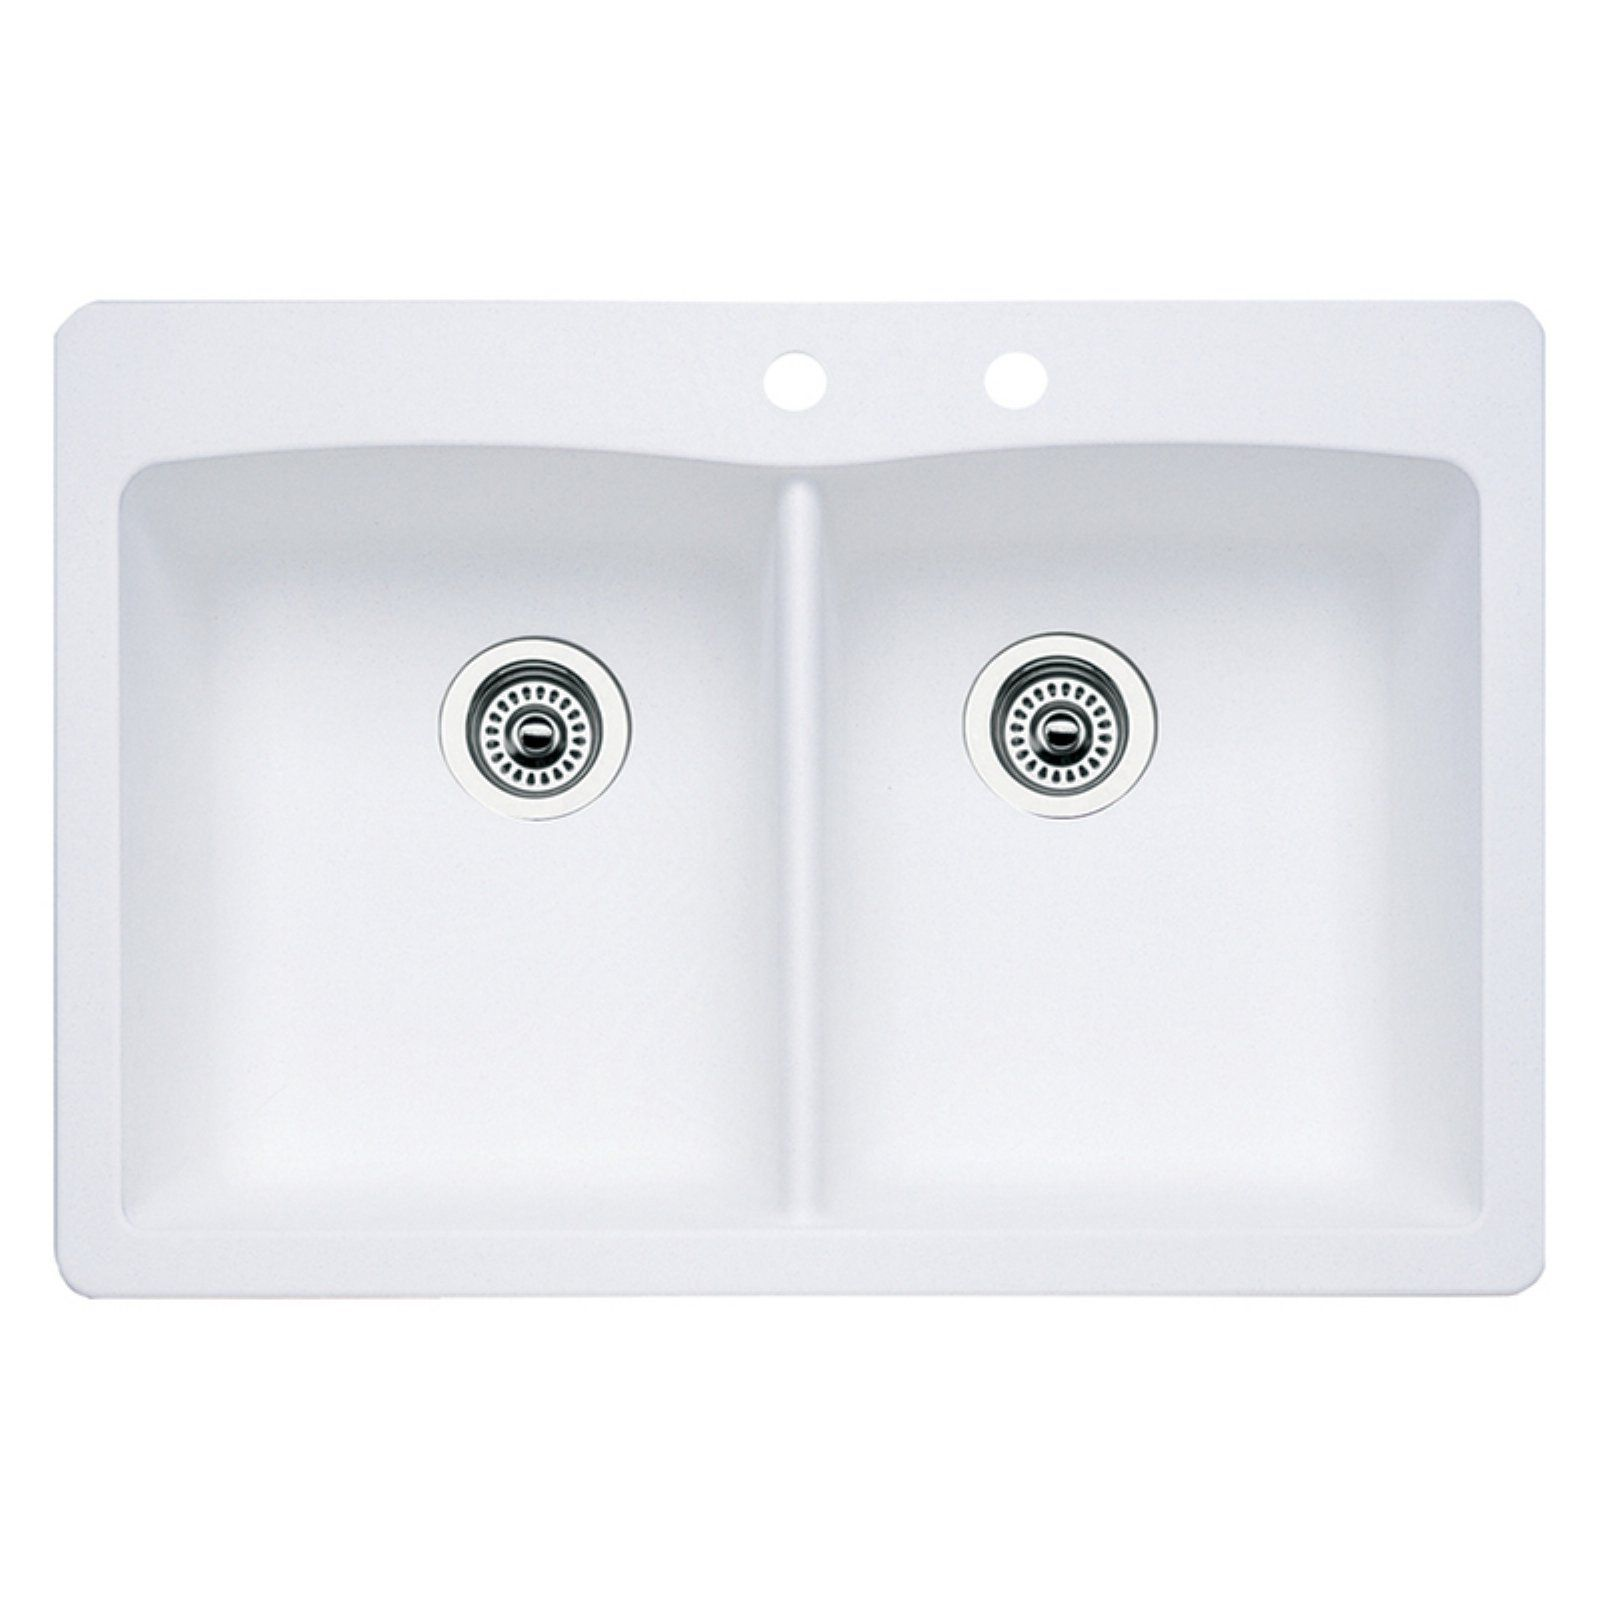 This Kind Of Bar Sink Is Absolutely An Exceptional Design Technique Barsink Kitchen Sink Remodel Double Bowl Kitchen Sink Undermount Kitchen Sinks